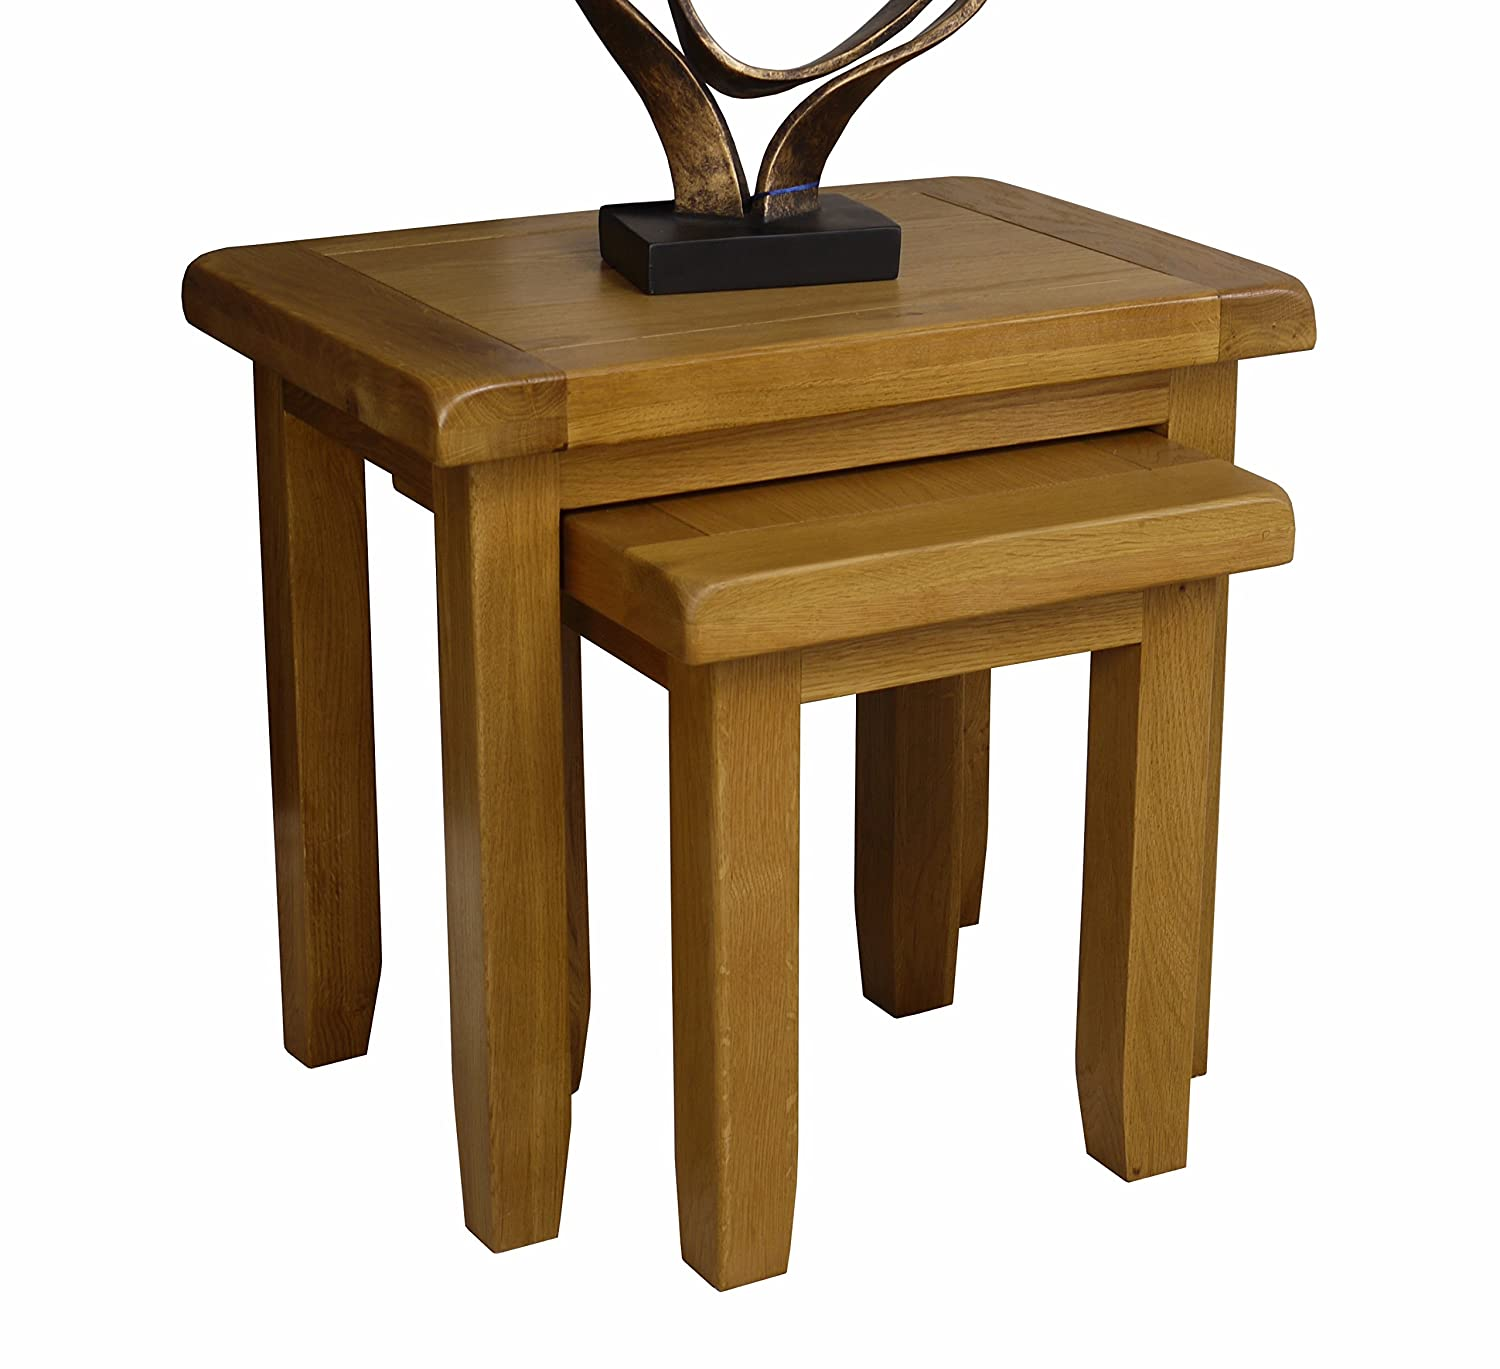 Arklow Oak Nest of Tables/Living Room Storage Nesting Tables